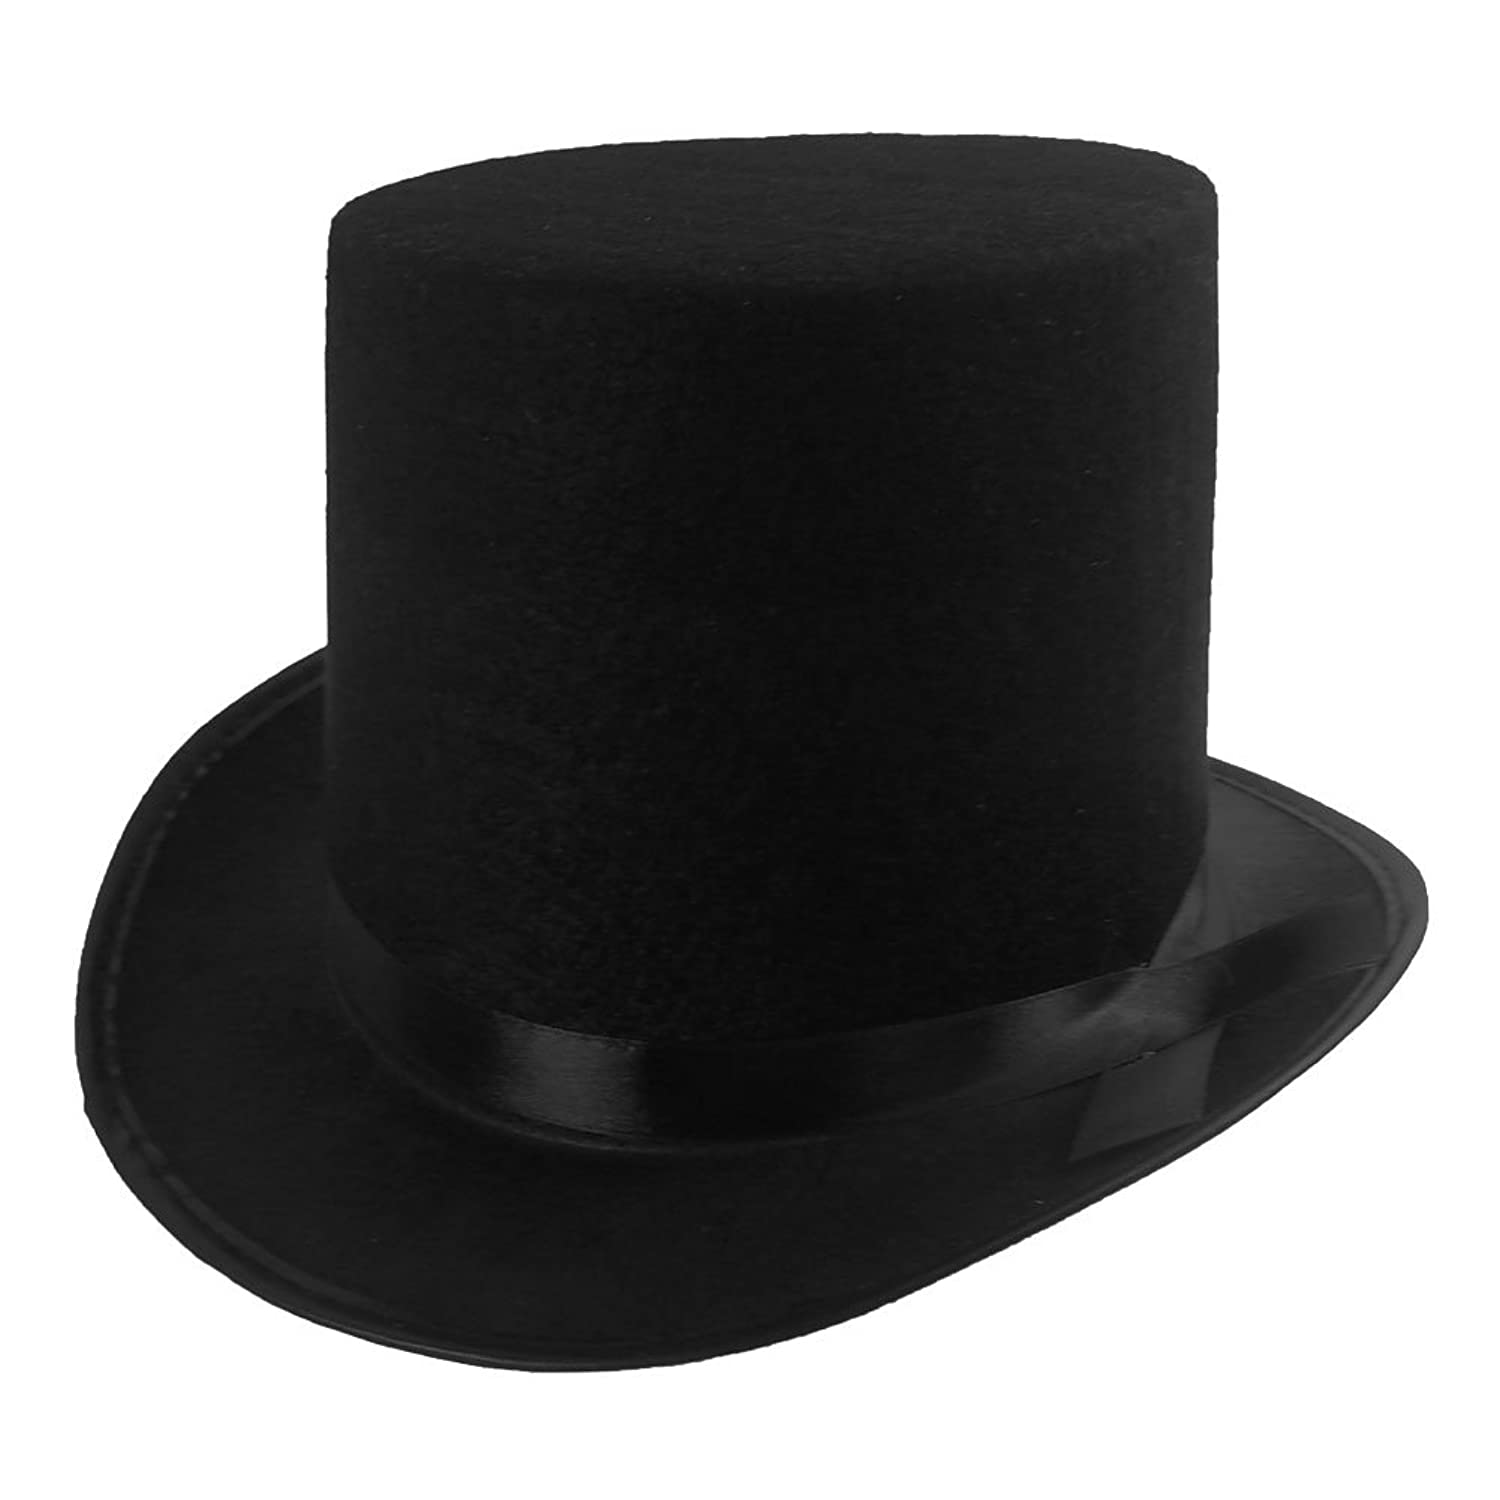 Party Hats Black Felt Top Costume Hat